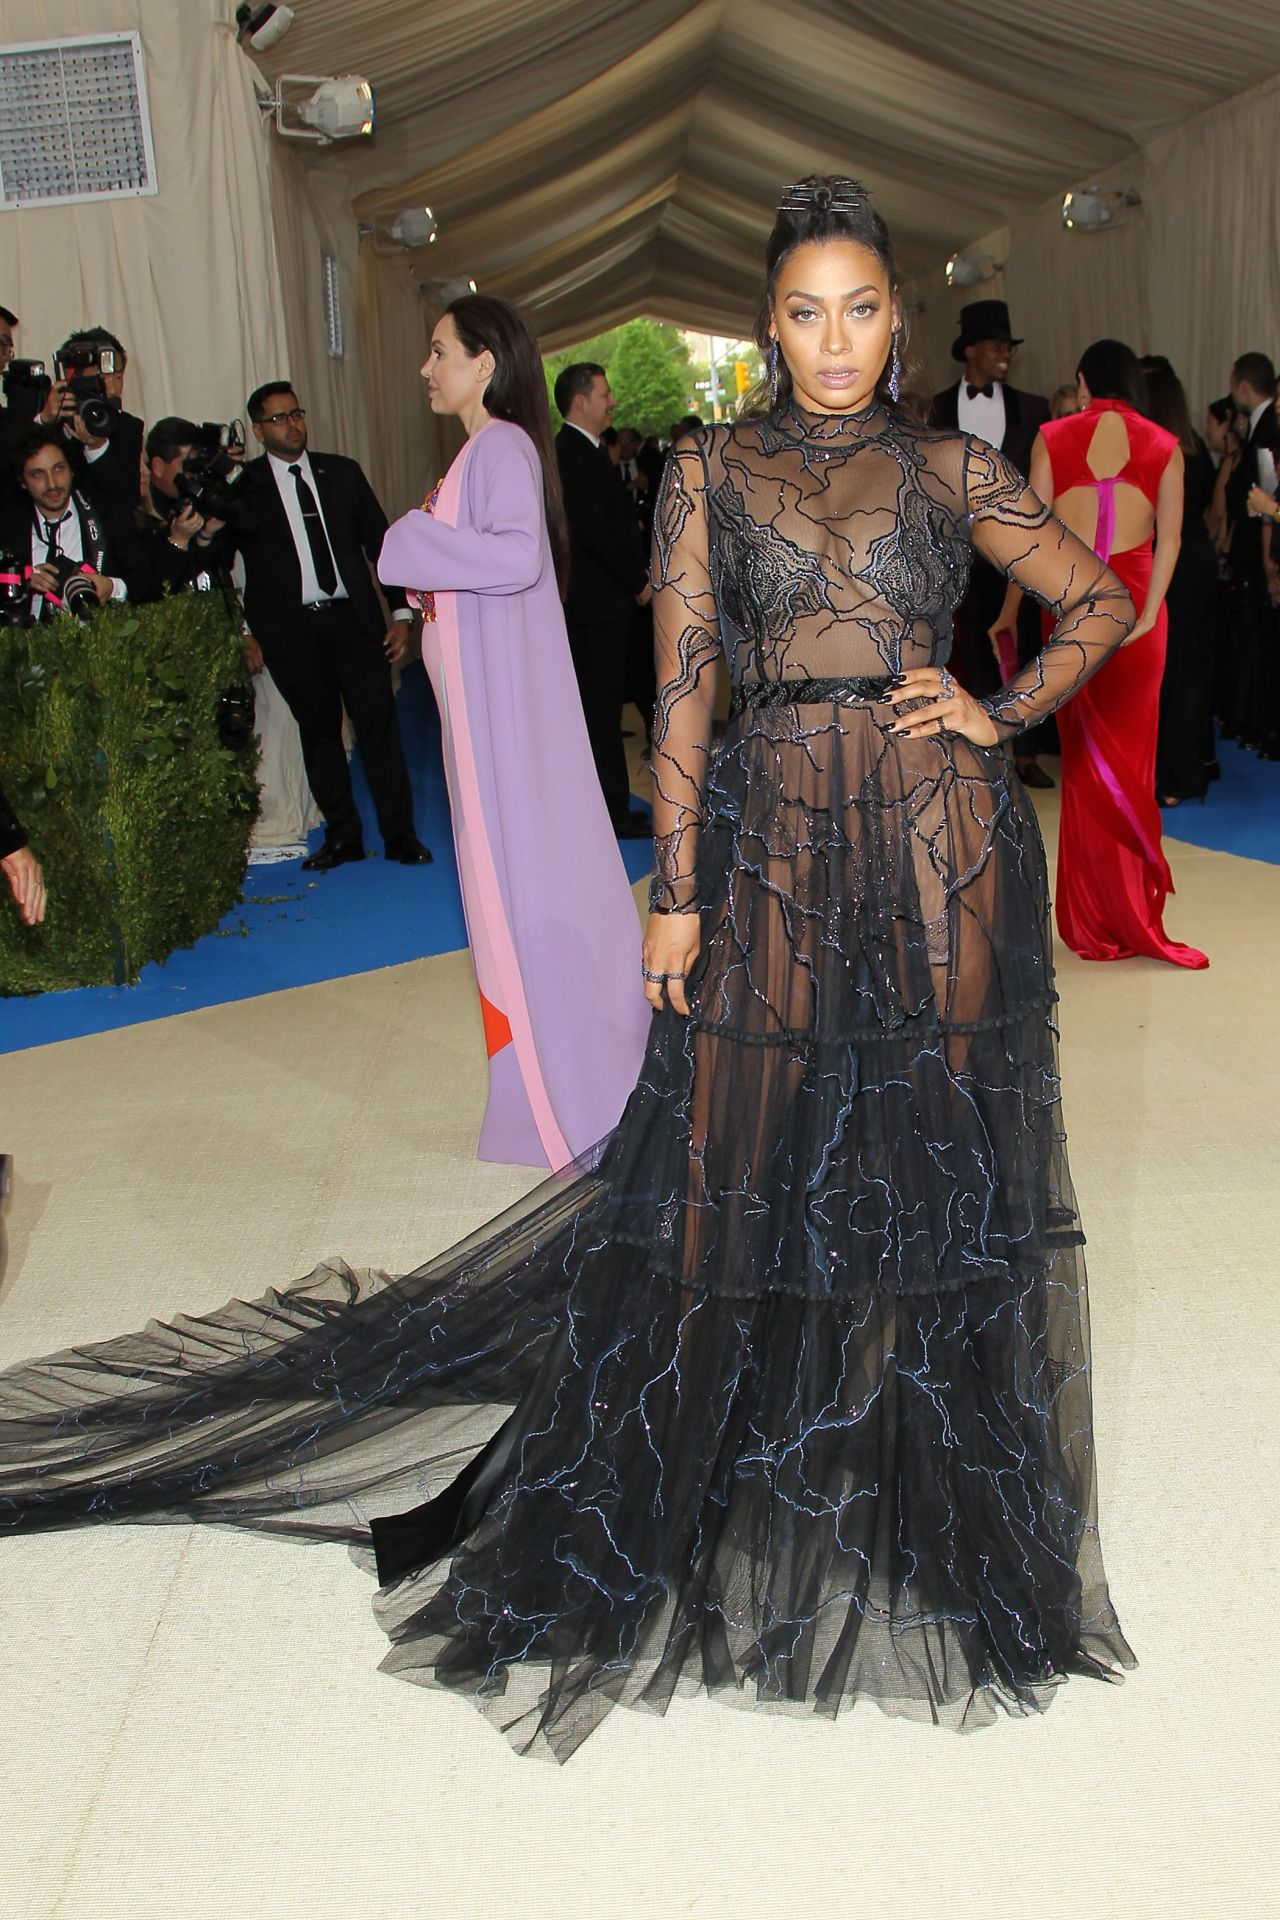 La La Anthony At Met Gala In New York on Red Carpet Show